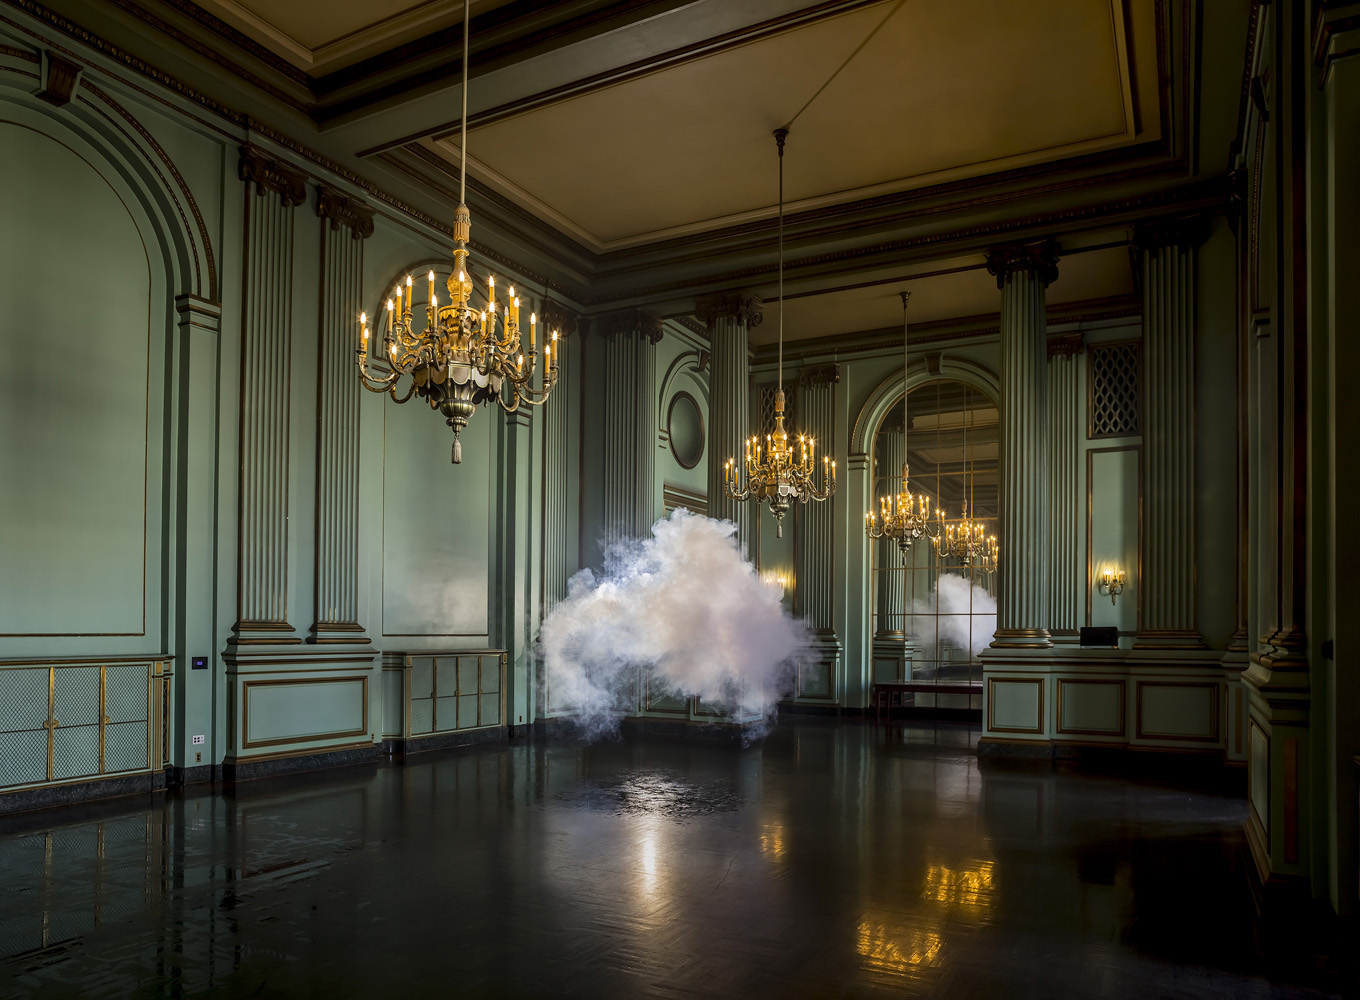 Berndnaut-Smilde-Nimbus-Green-Room_2013_courtesy-the-artist-and-Ronchini-Gallery